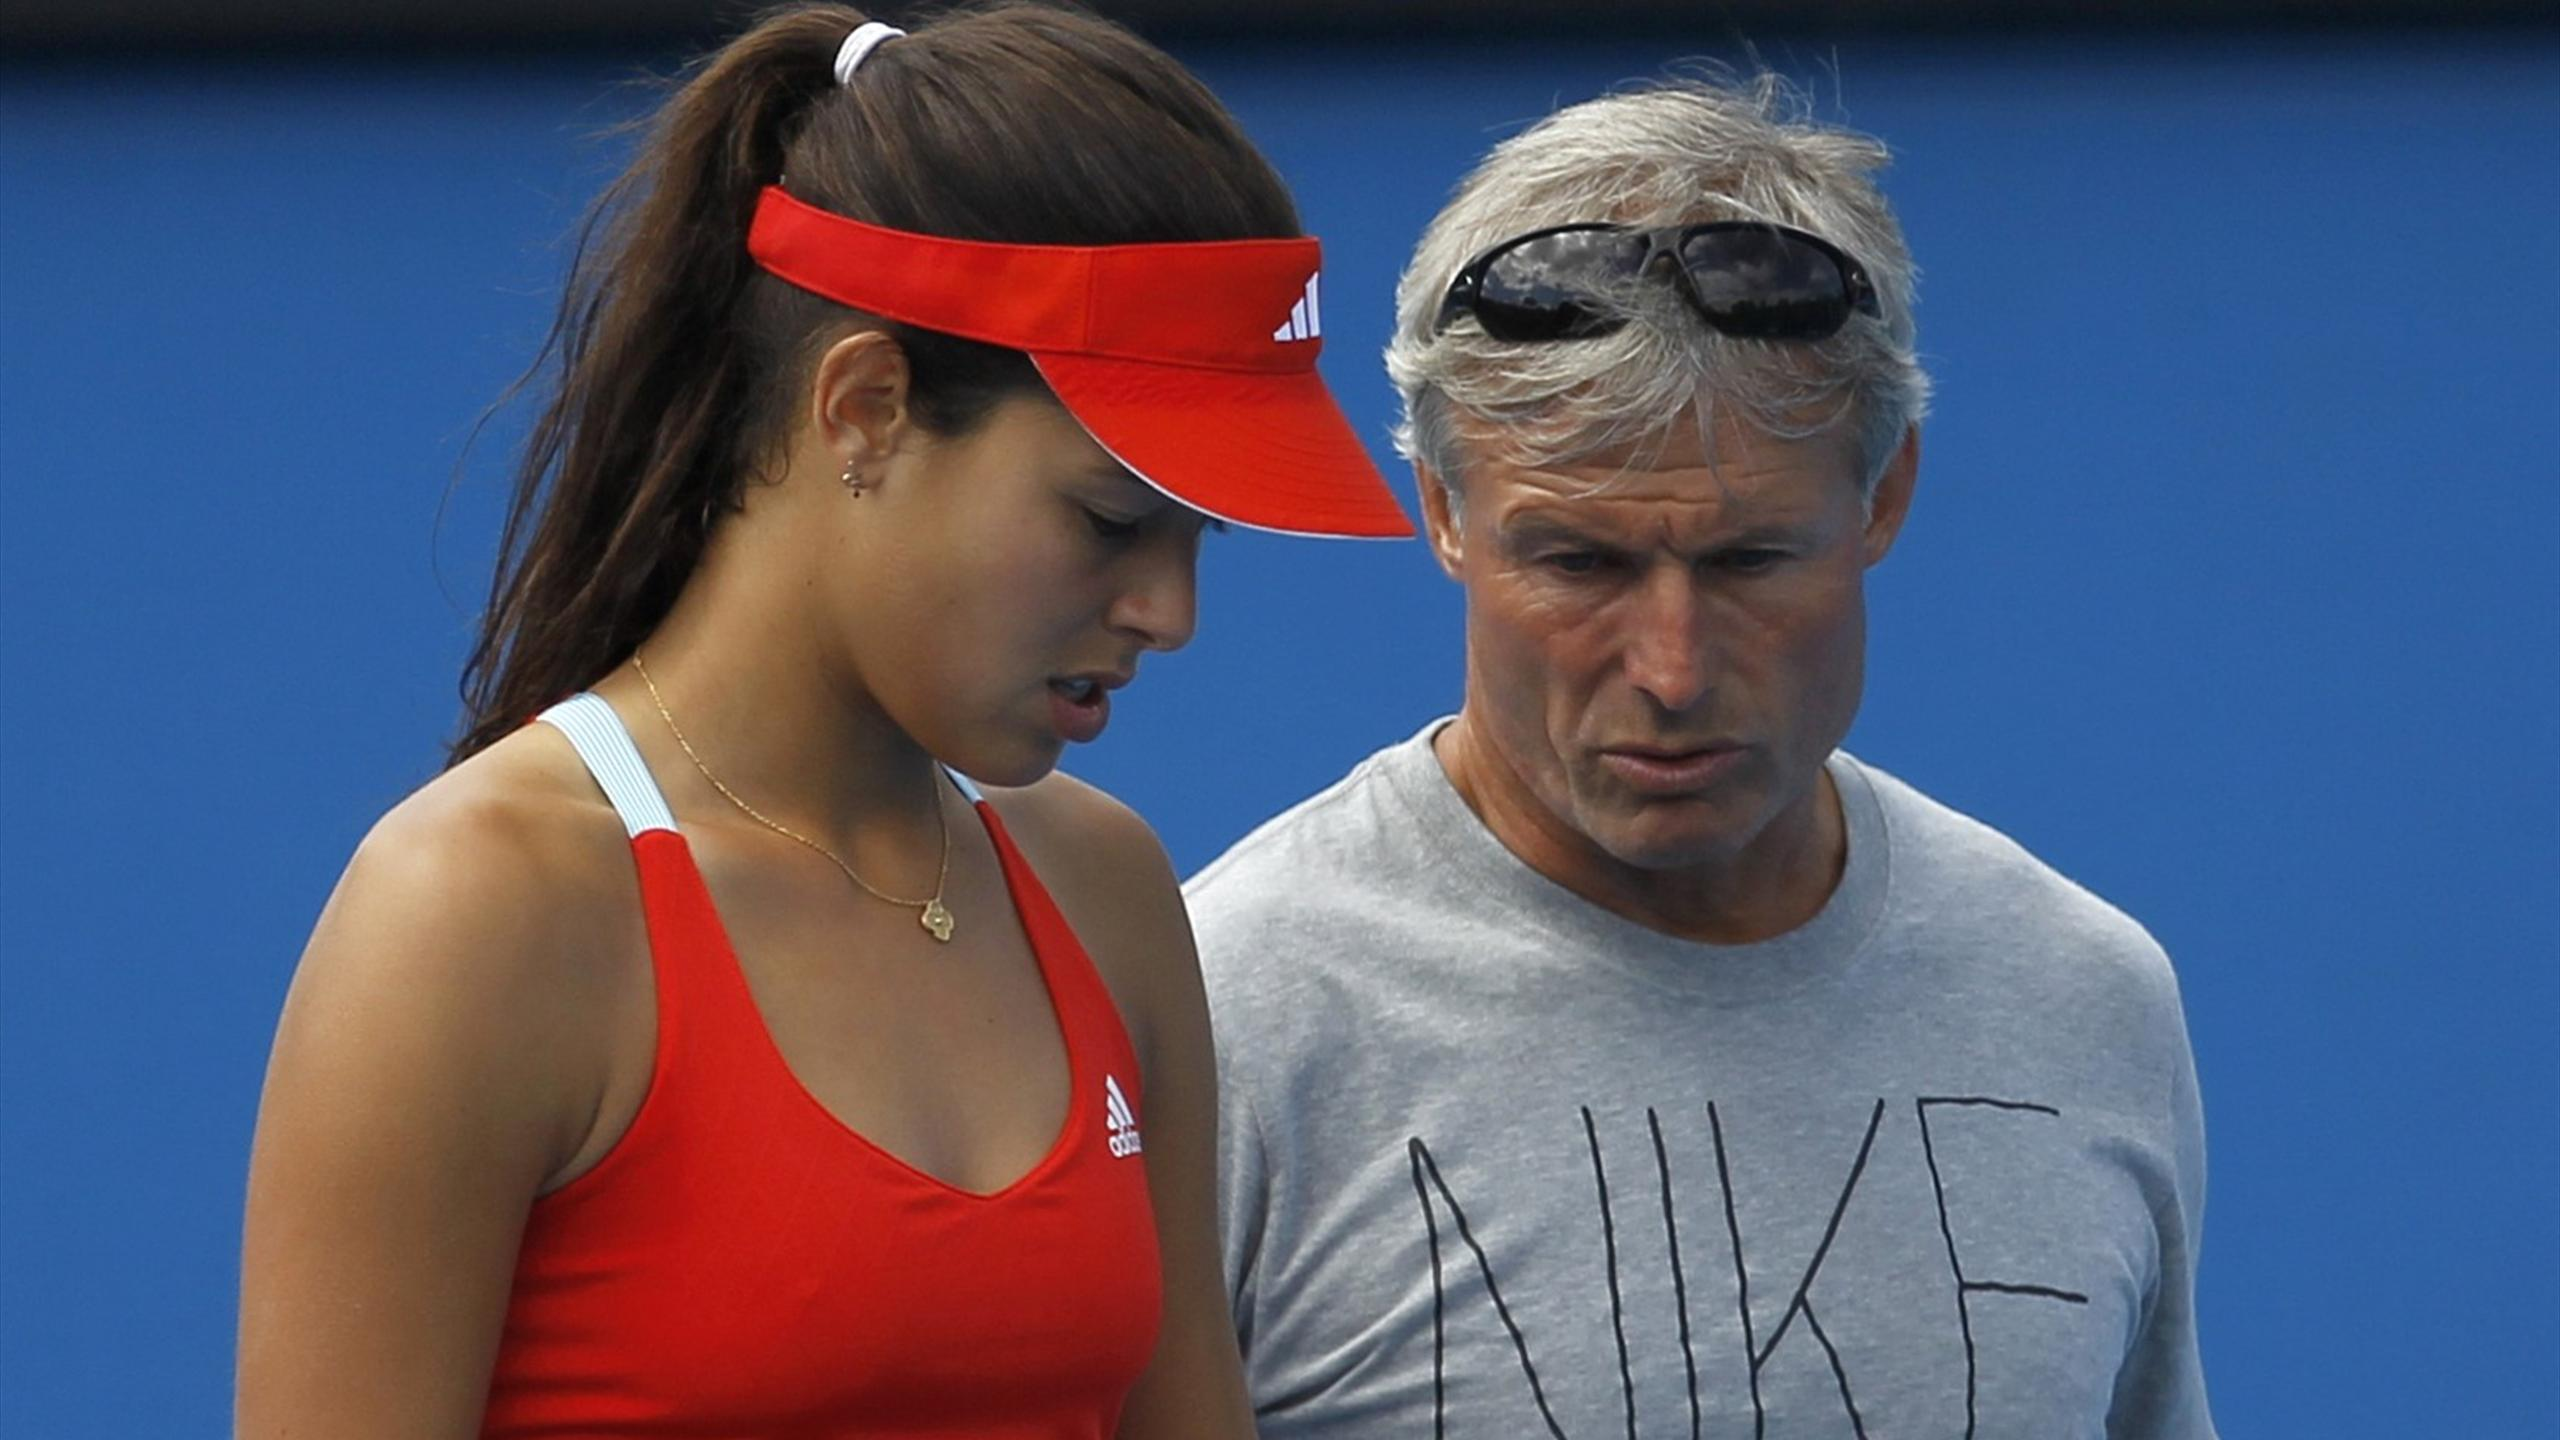 Ana Ivanovic of Serbia talks to coach Nigel Sears during a practice session